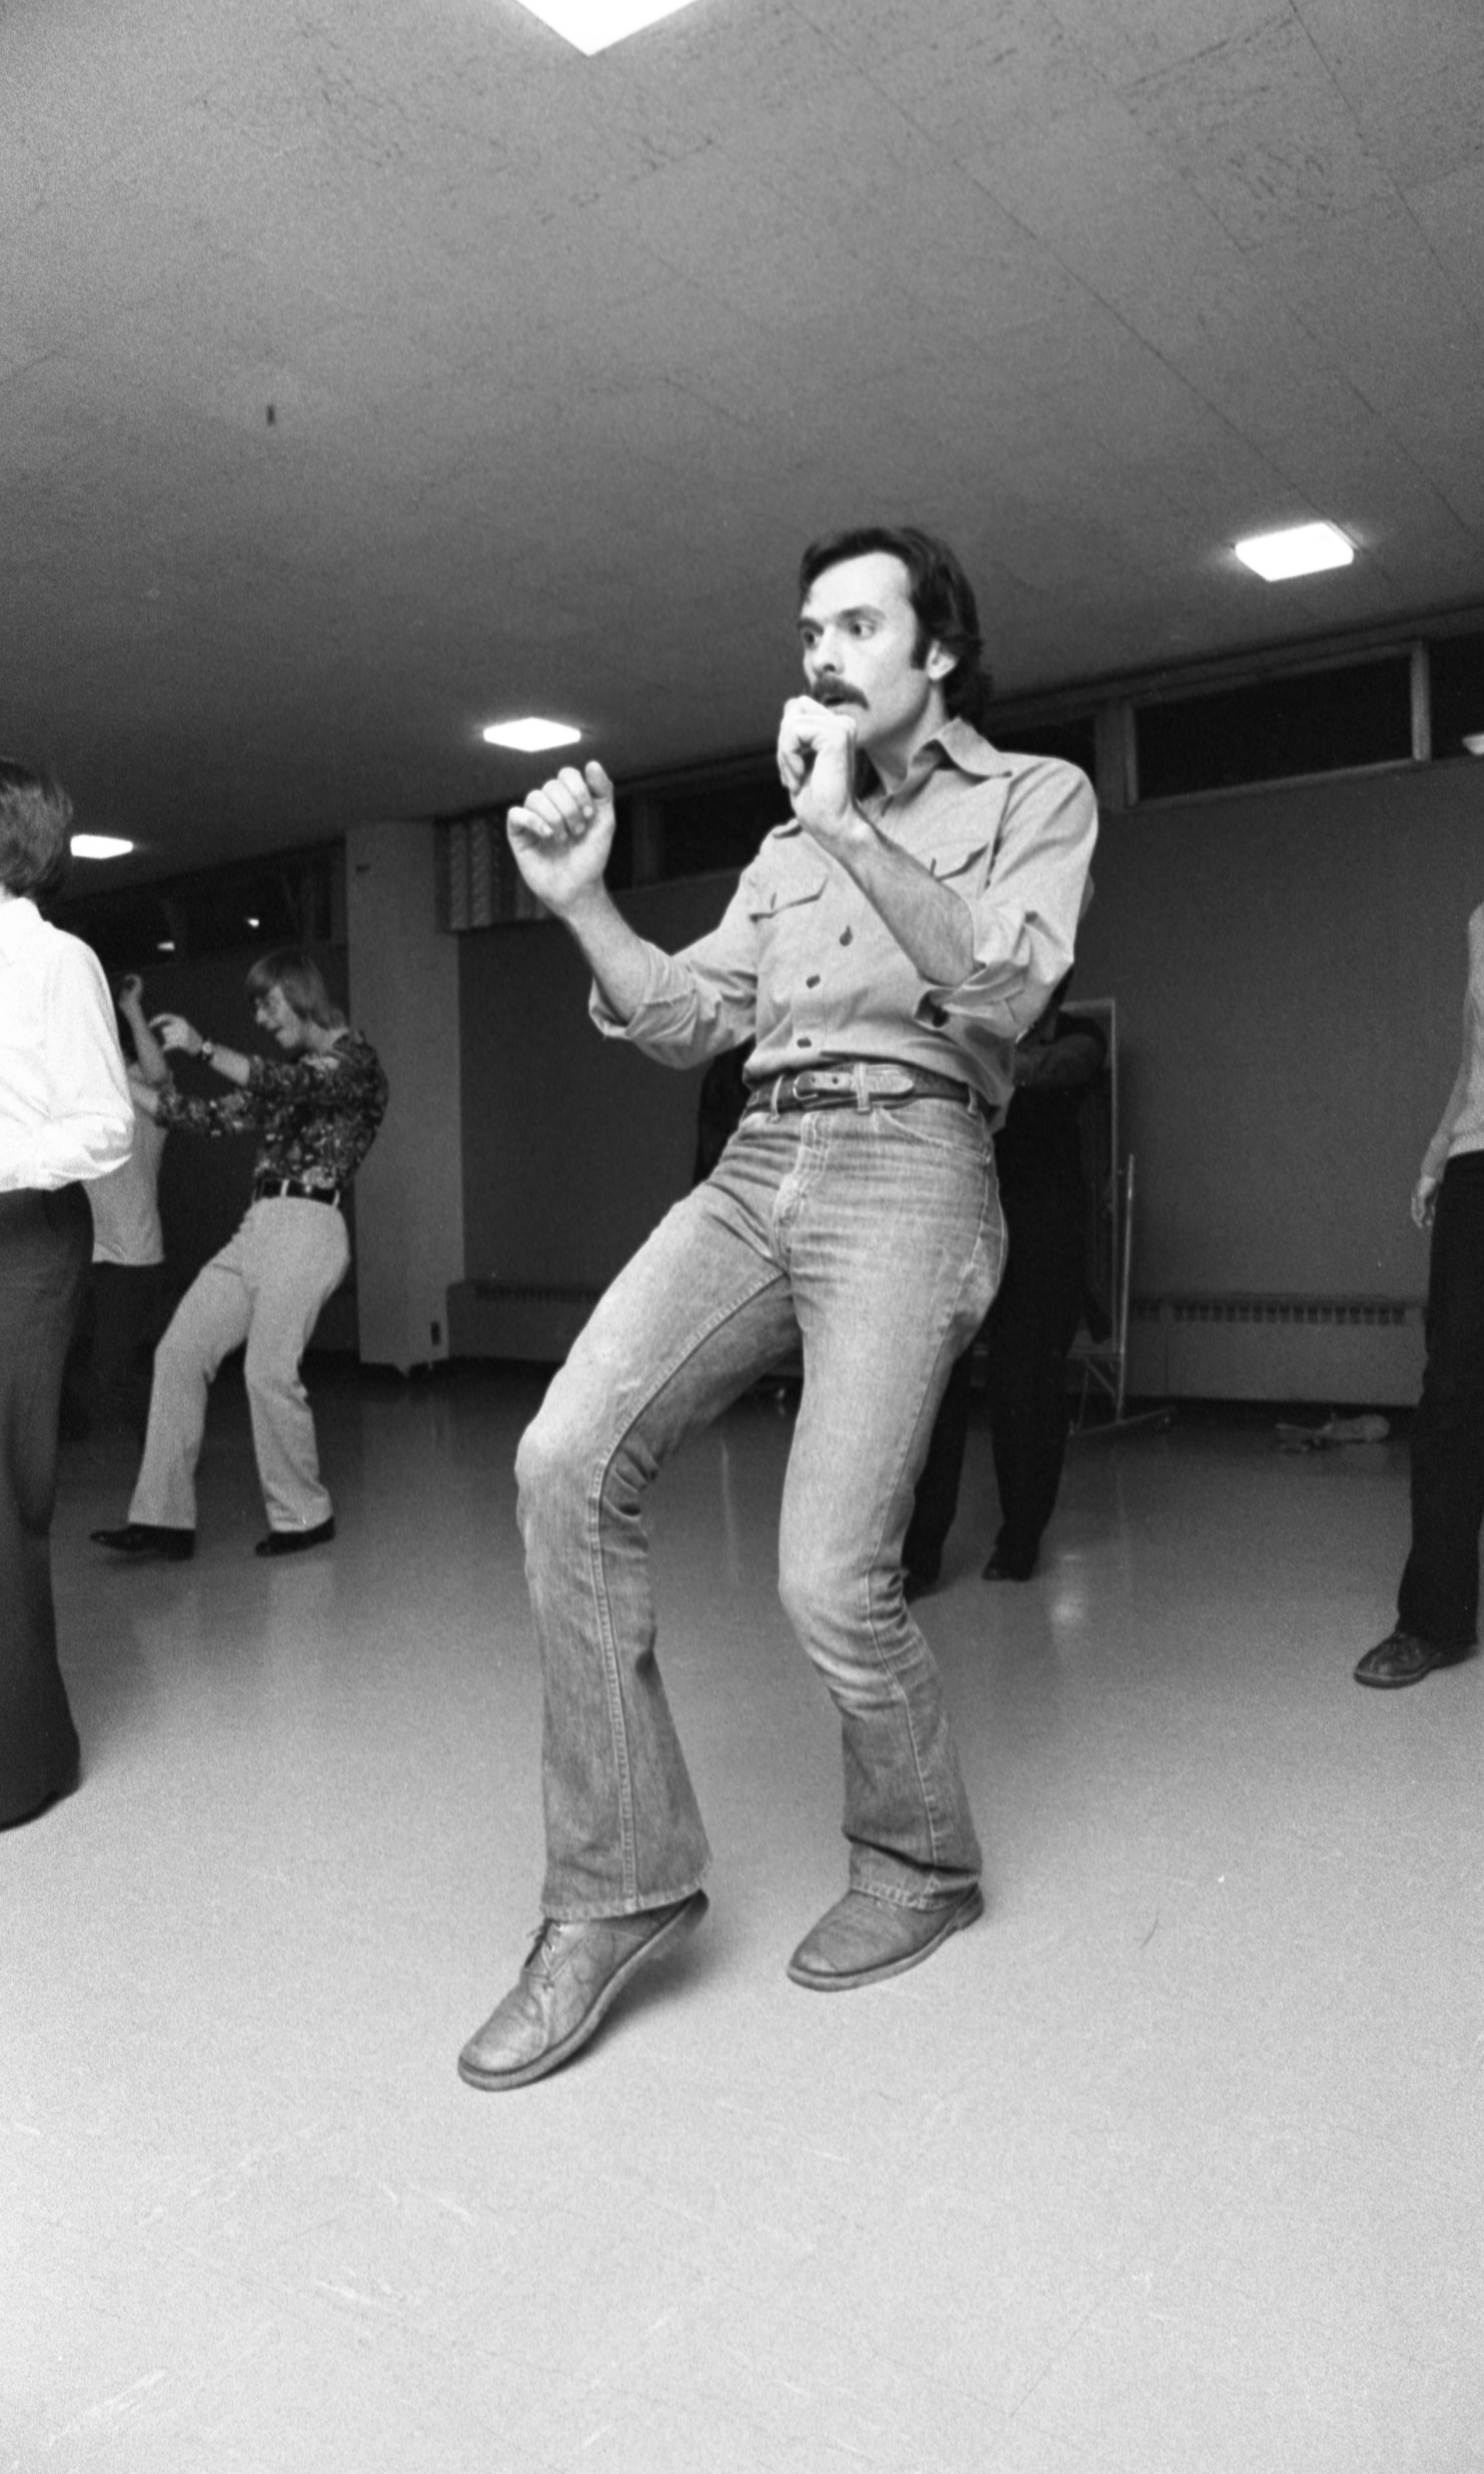 Adult Students Practice Their Moves In A Disco Class At The Ann Arbor Y, November 1976 image